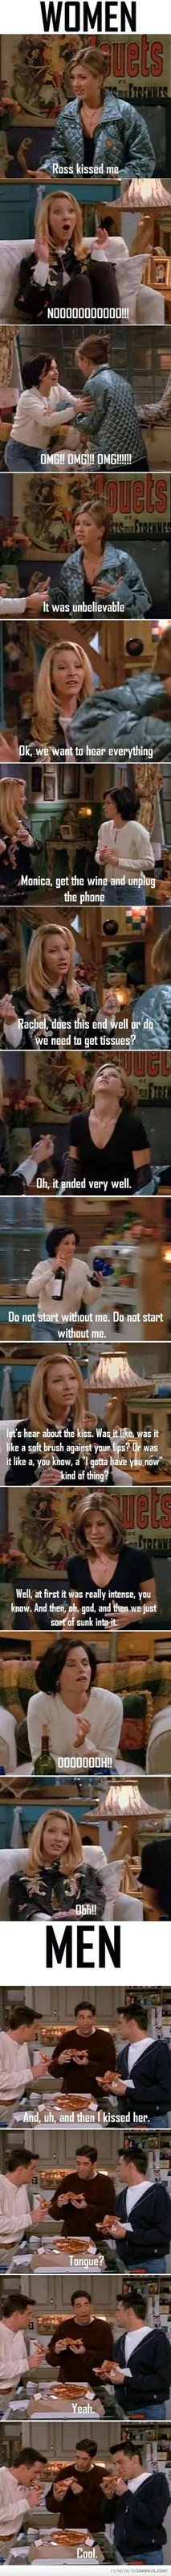 friends nails the difference between women and men